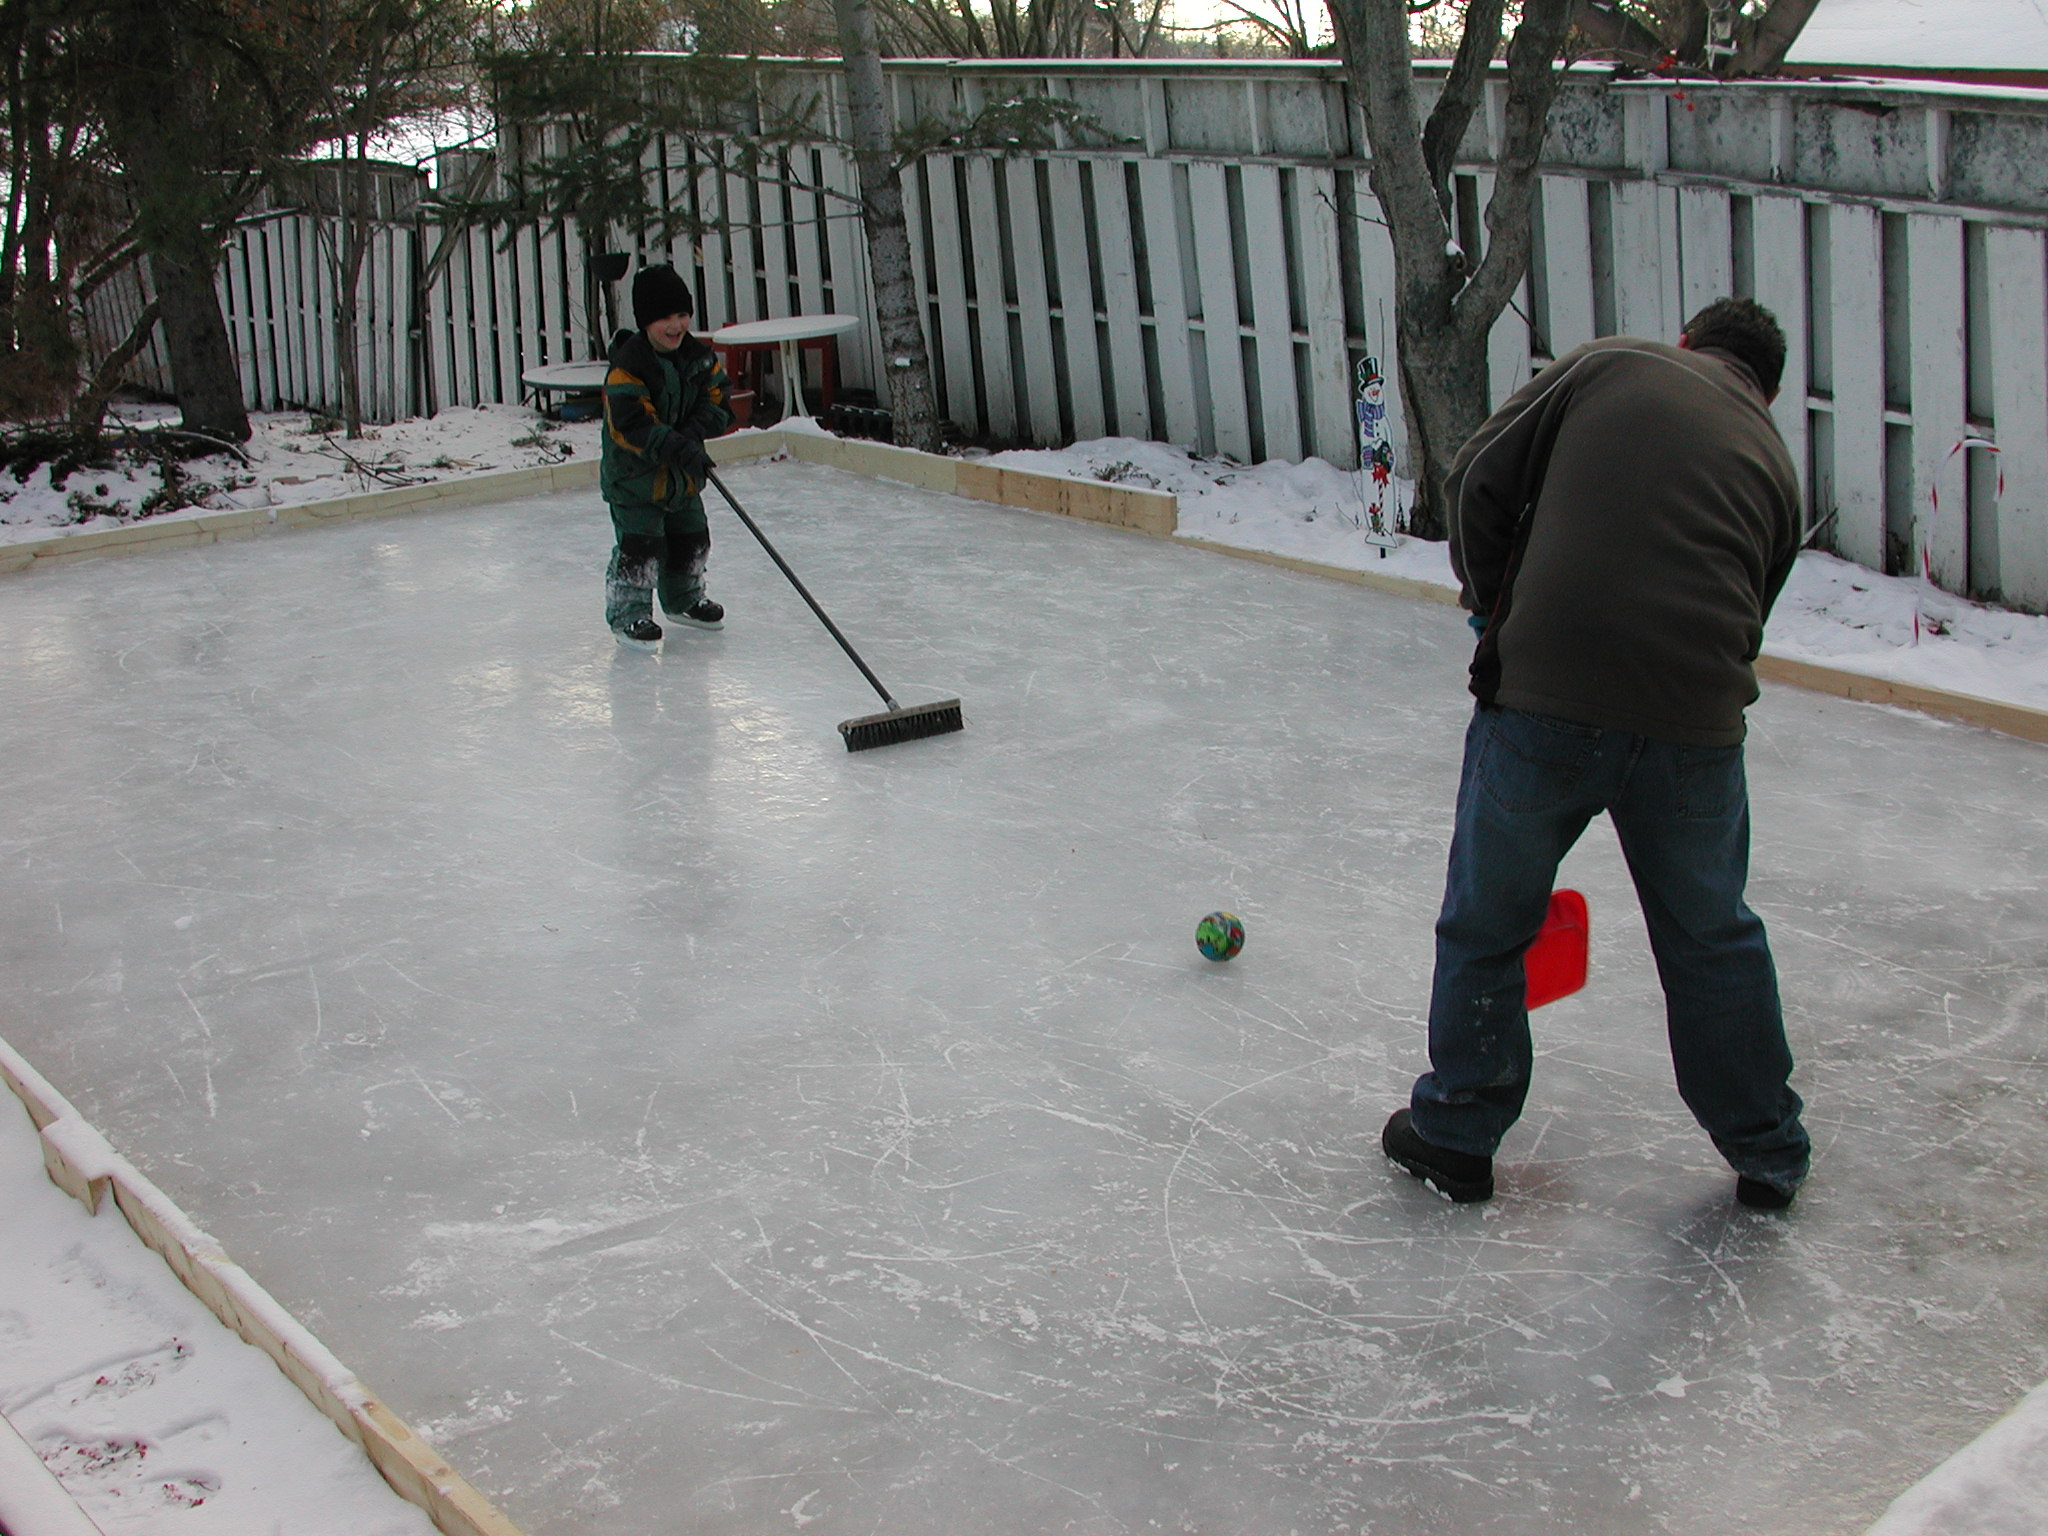 Aaron had just learned to skate on his own, playing a form of Broomball with his Uncle Kevin.